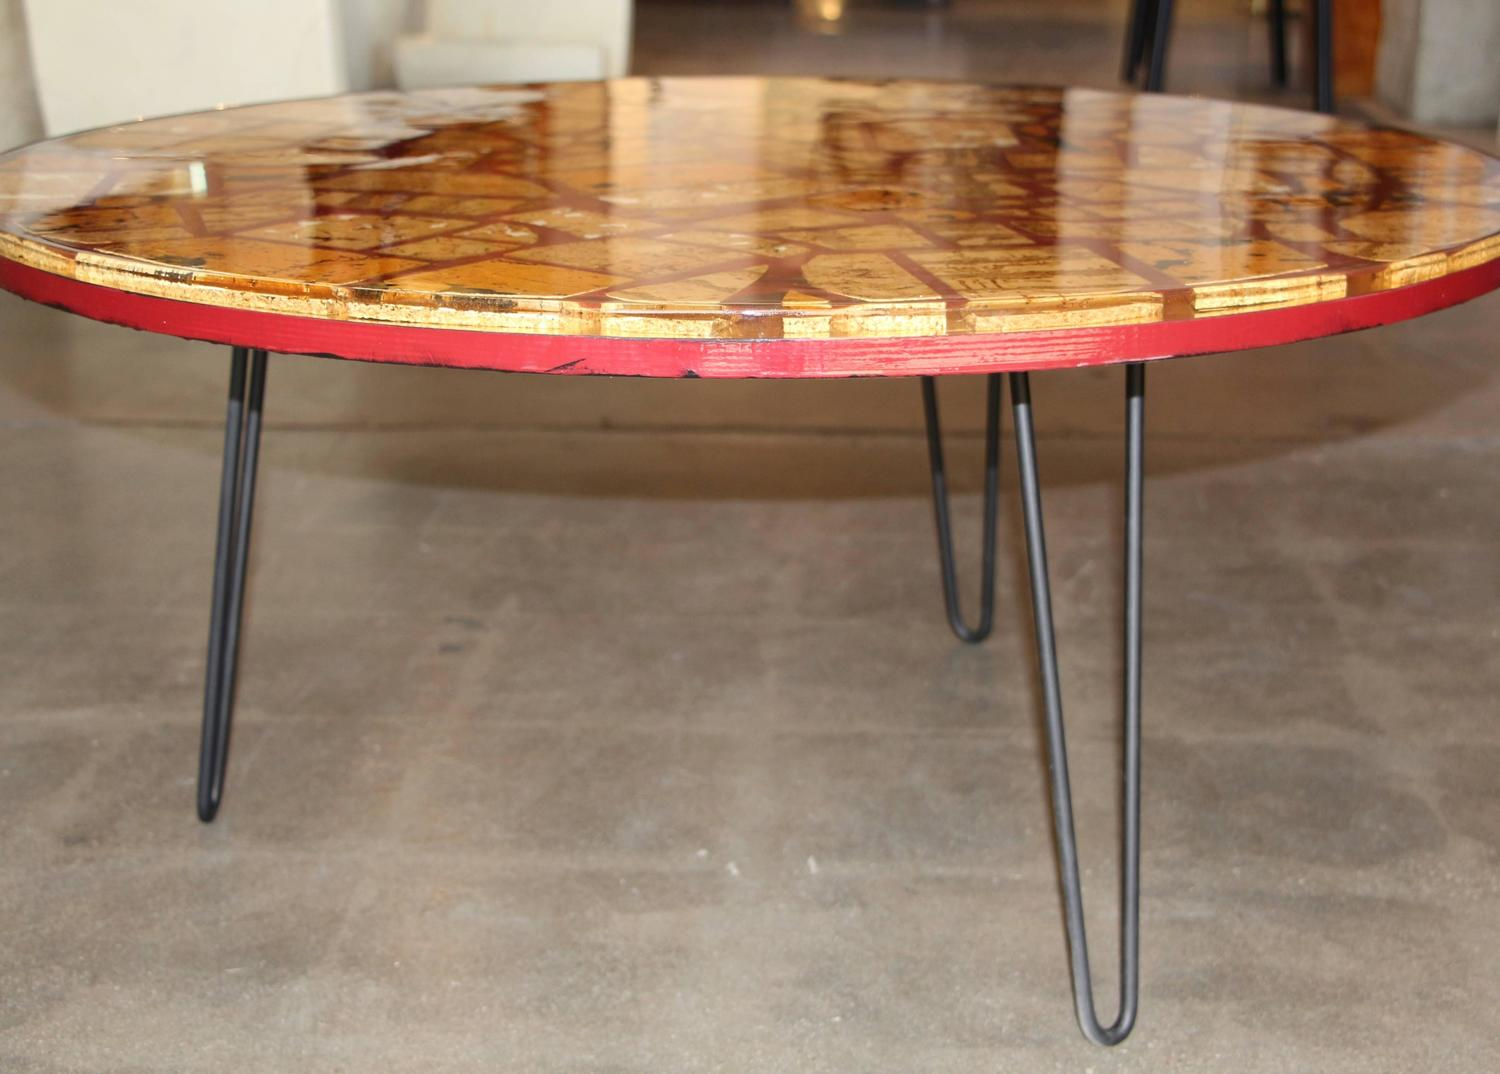 Resin epoxy table with pretty cork pieces on hairpin legs for sale at 1stdibs - Table resine epoxy ...